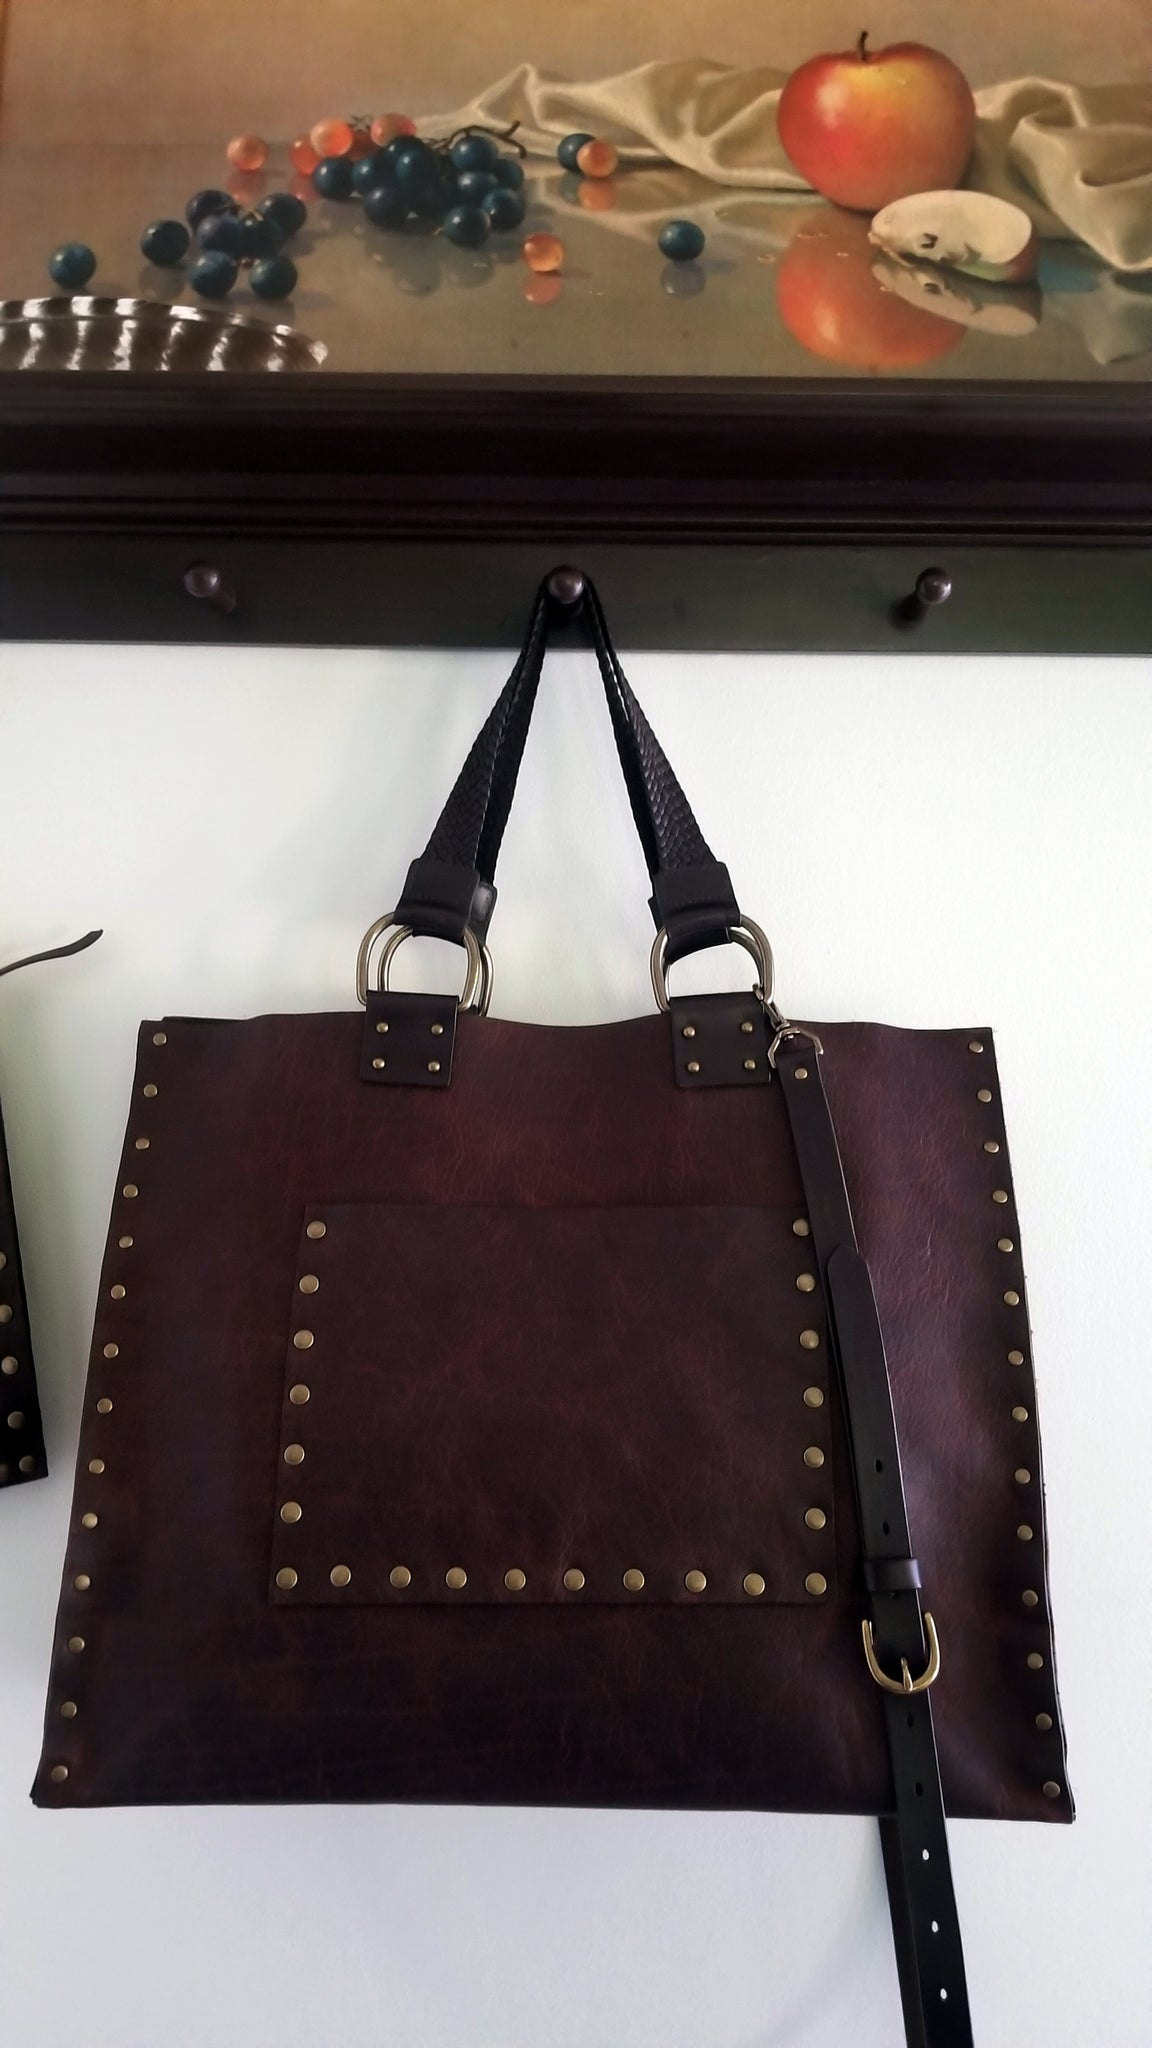 malia tote bag, brown with matching carry strap